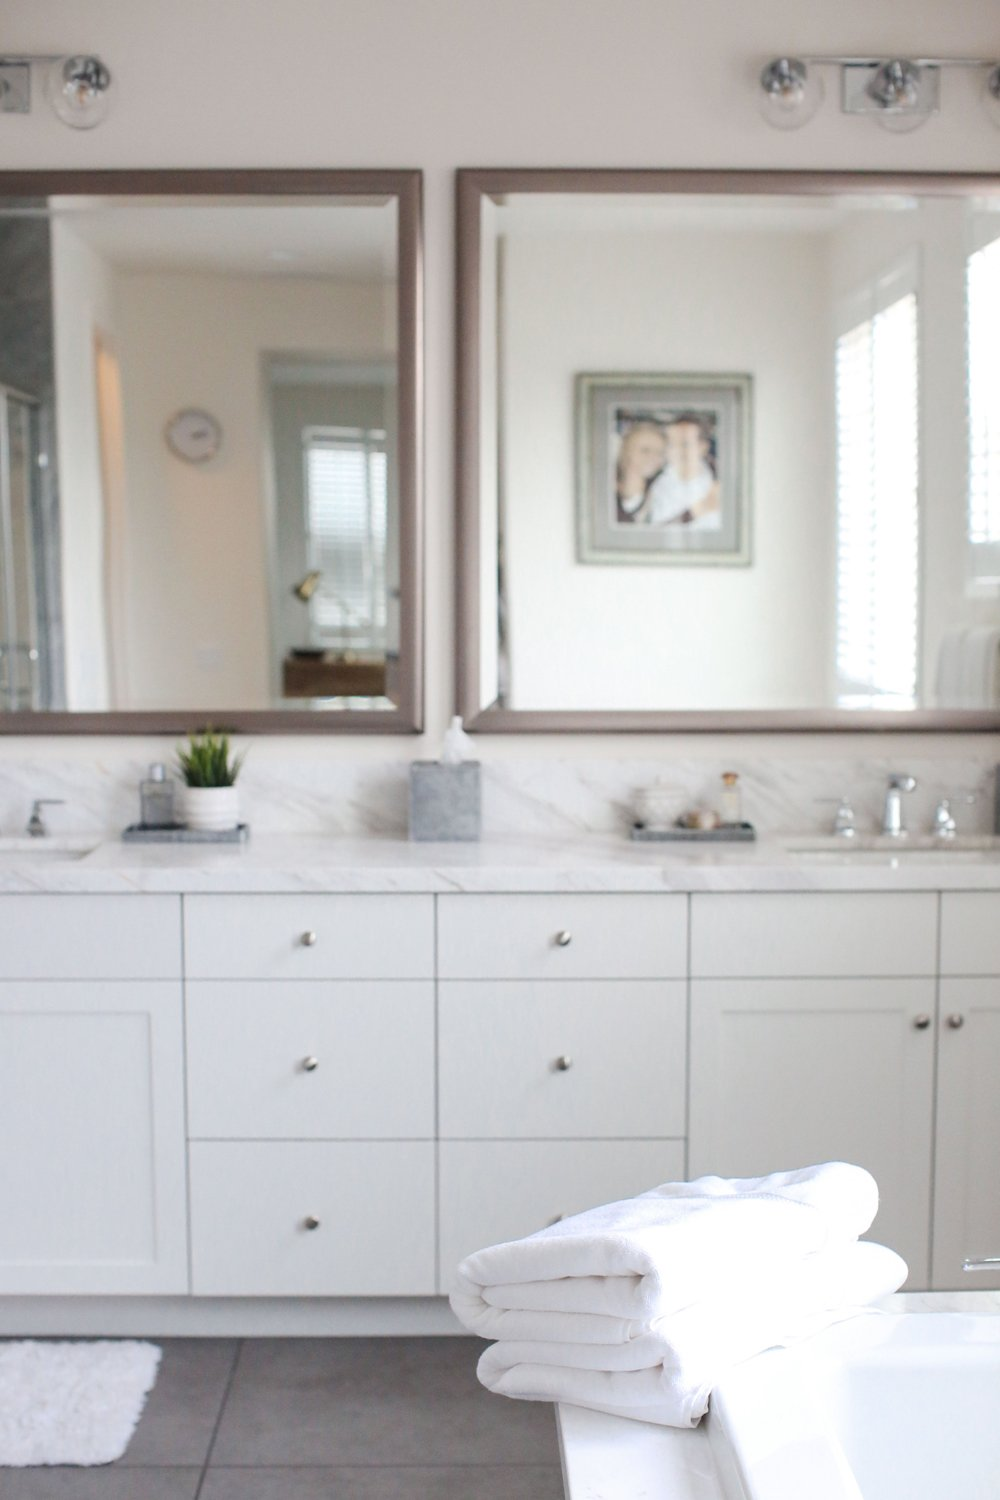 Merrick's Art Master Bathroom